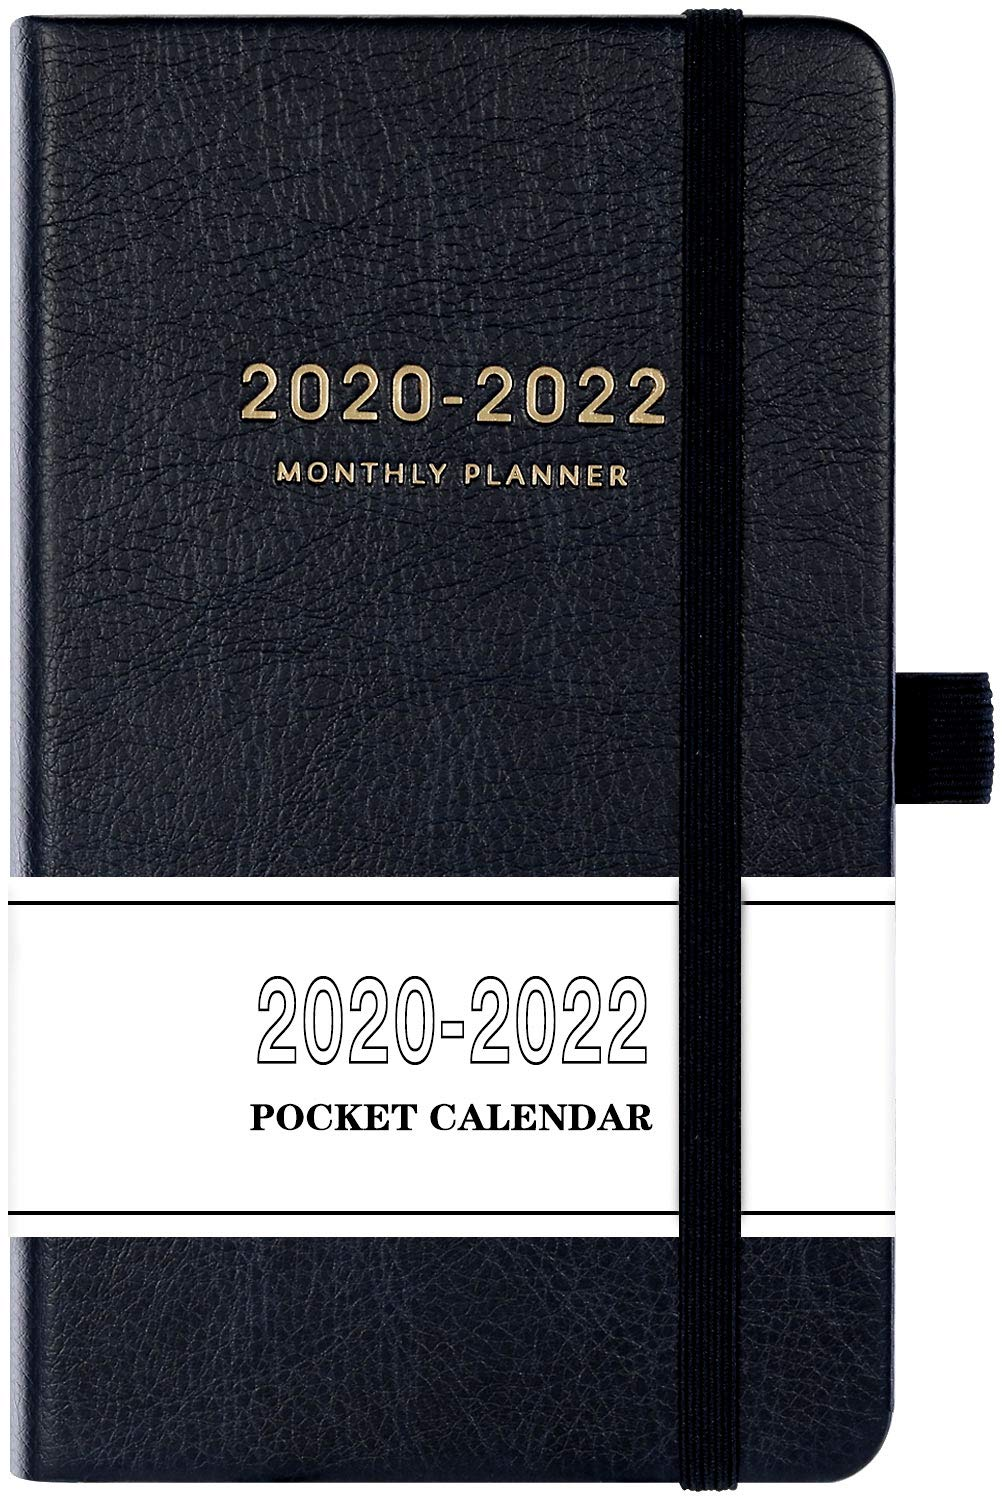 """2020-2022 Pocket Calendar - Monthly Pocket Planner (36-Month) with 63 Notes Pages, 3.8"""" x 6.3"""", 3 Year Monthly Planner with Contacts, Holidays and Pen Holder, Back Pocket with Thick Paper - Black"""